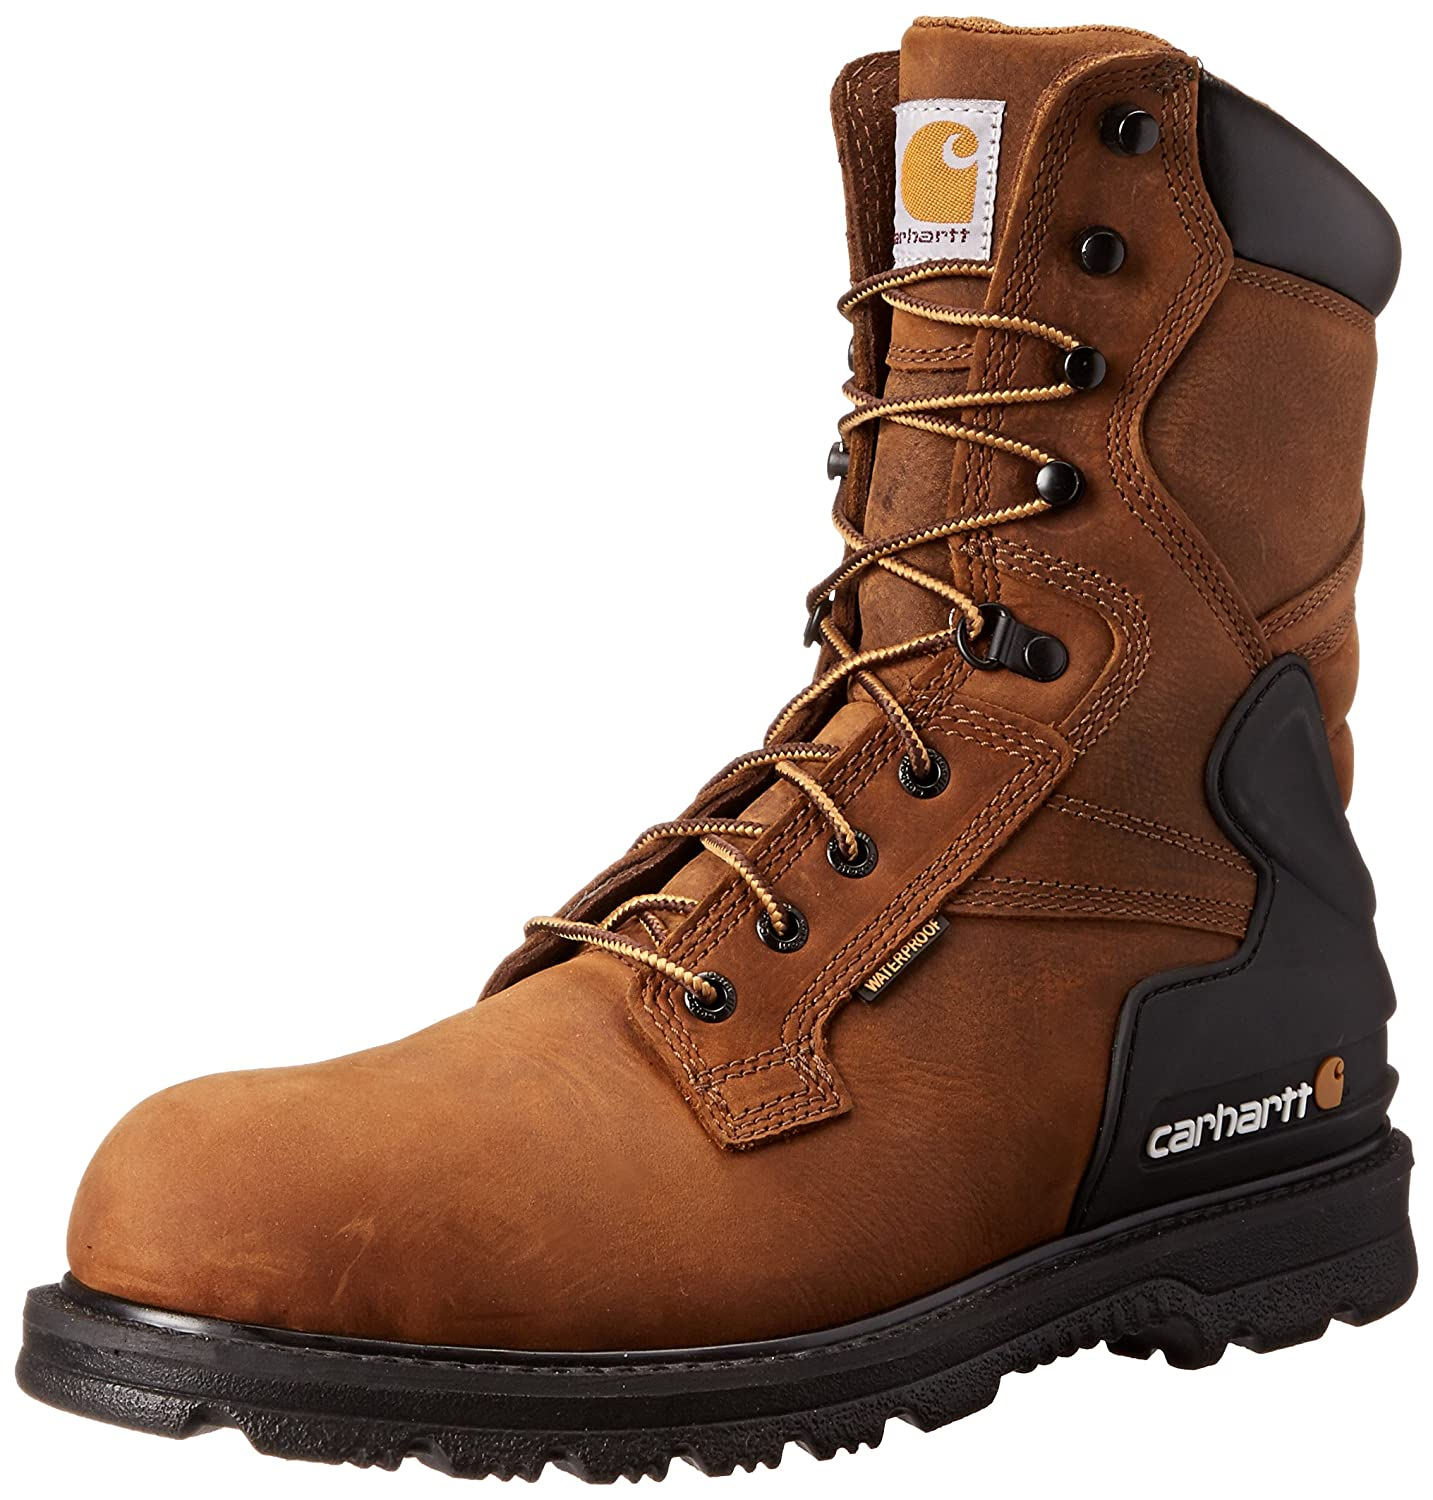 Carhartt Mens 8 inch Closed Toe Cold Weather Boots B007BO150C 10.5 2E US|Bison Brown Oil Tan Bison Brown Oil Tan 10.5 2E US